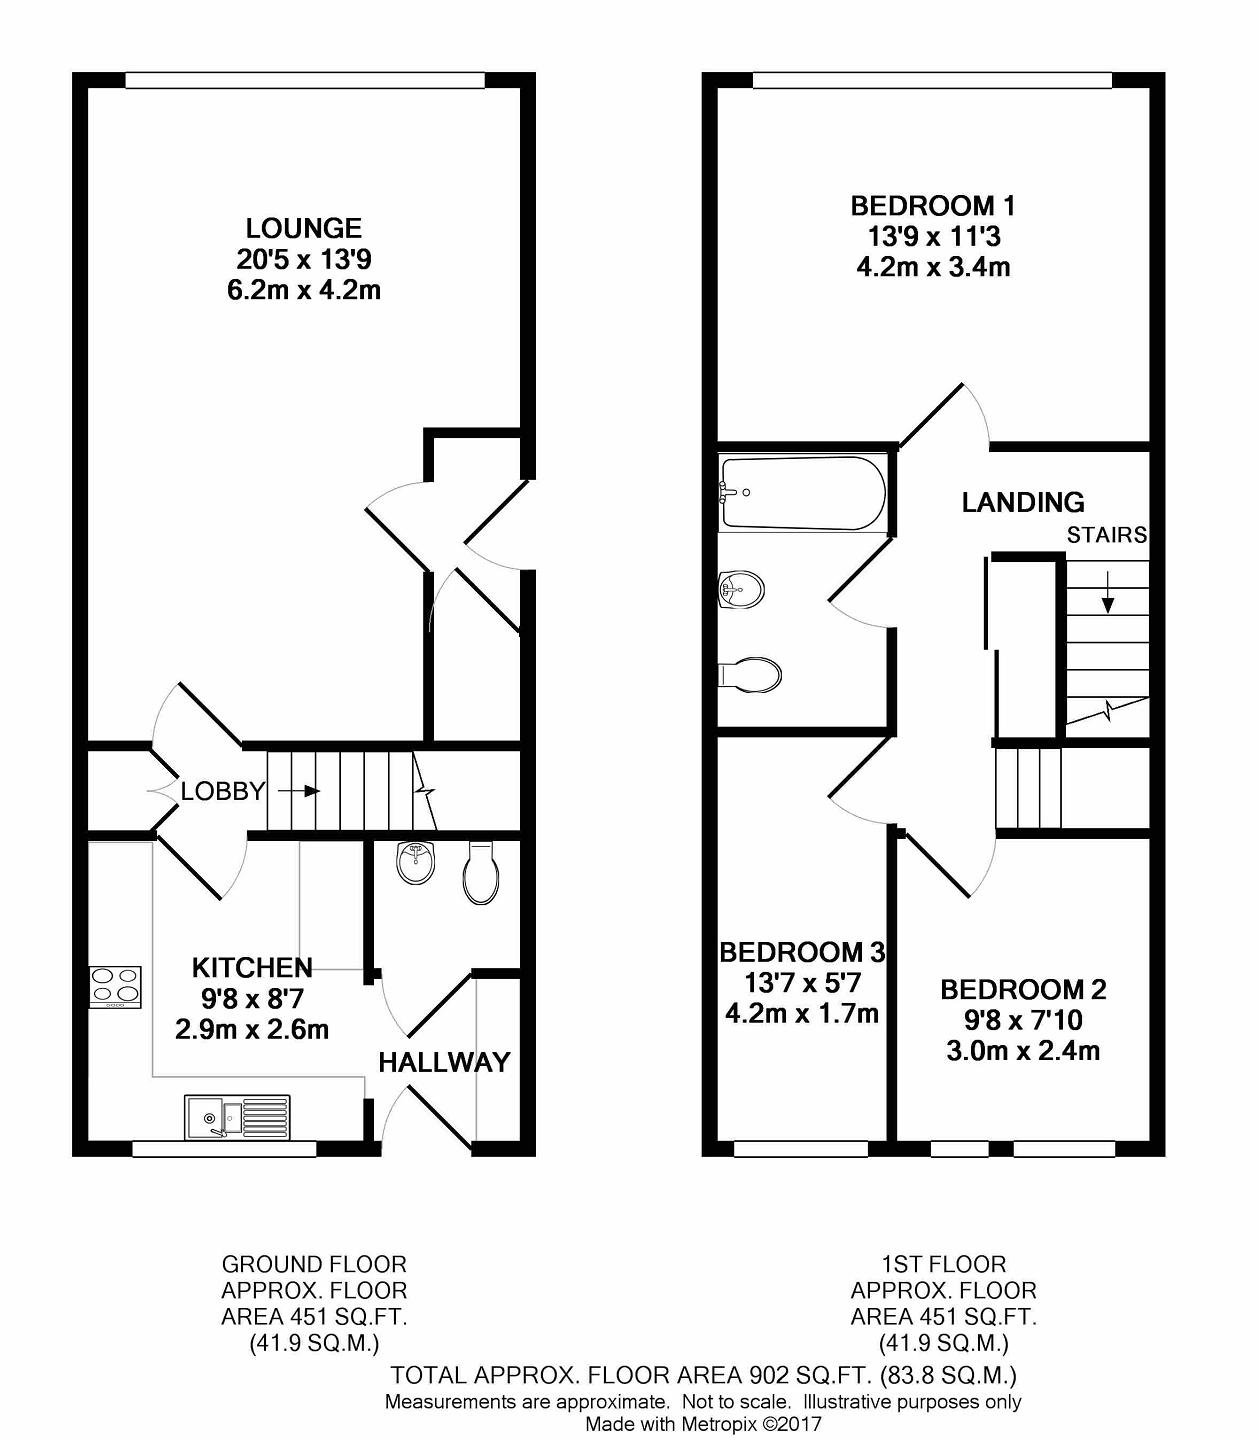 5x8 Bathroom Floor Plan Wood Floors: bathroom floor plans 7 x 8